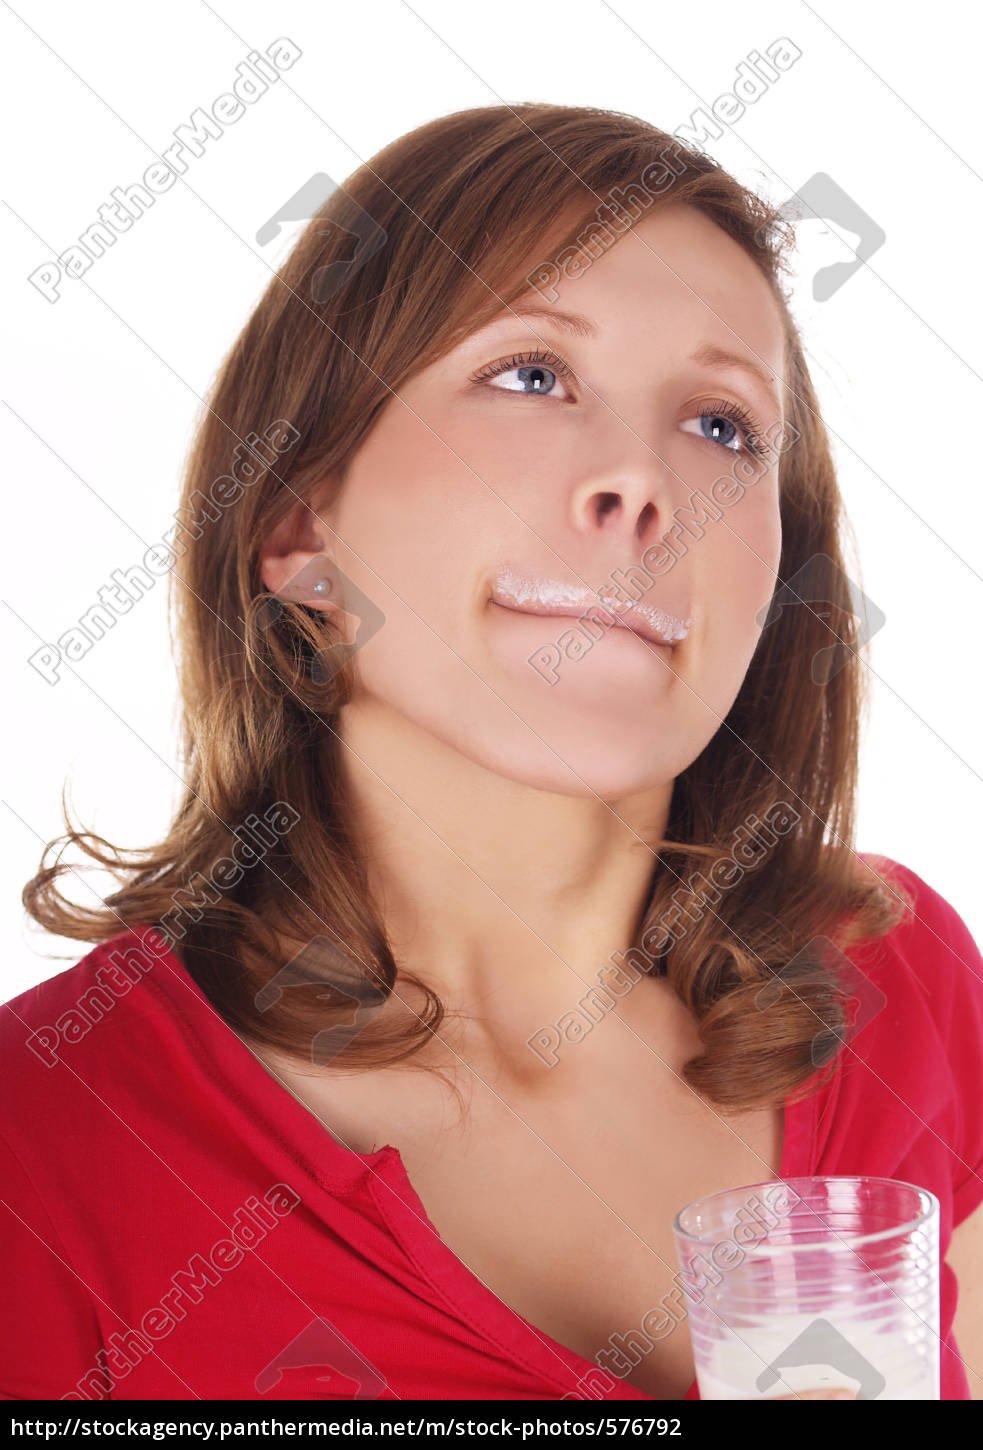 woman, enjoying, milk - 576792